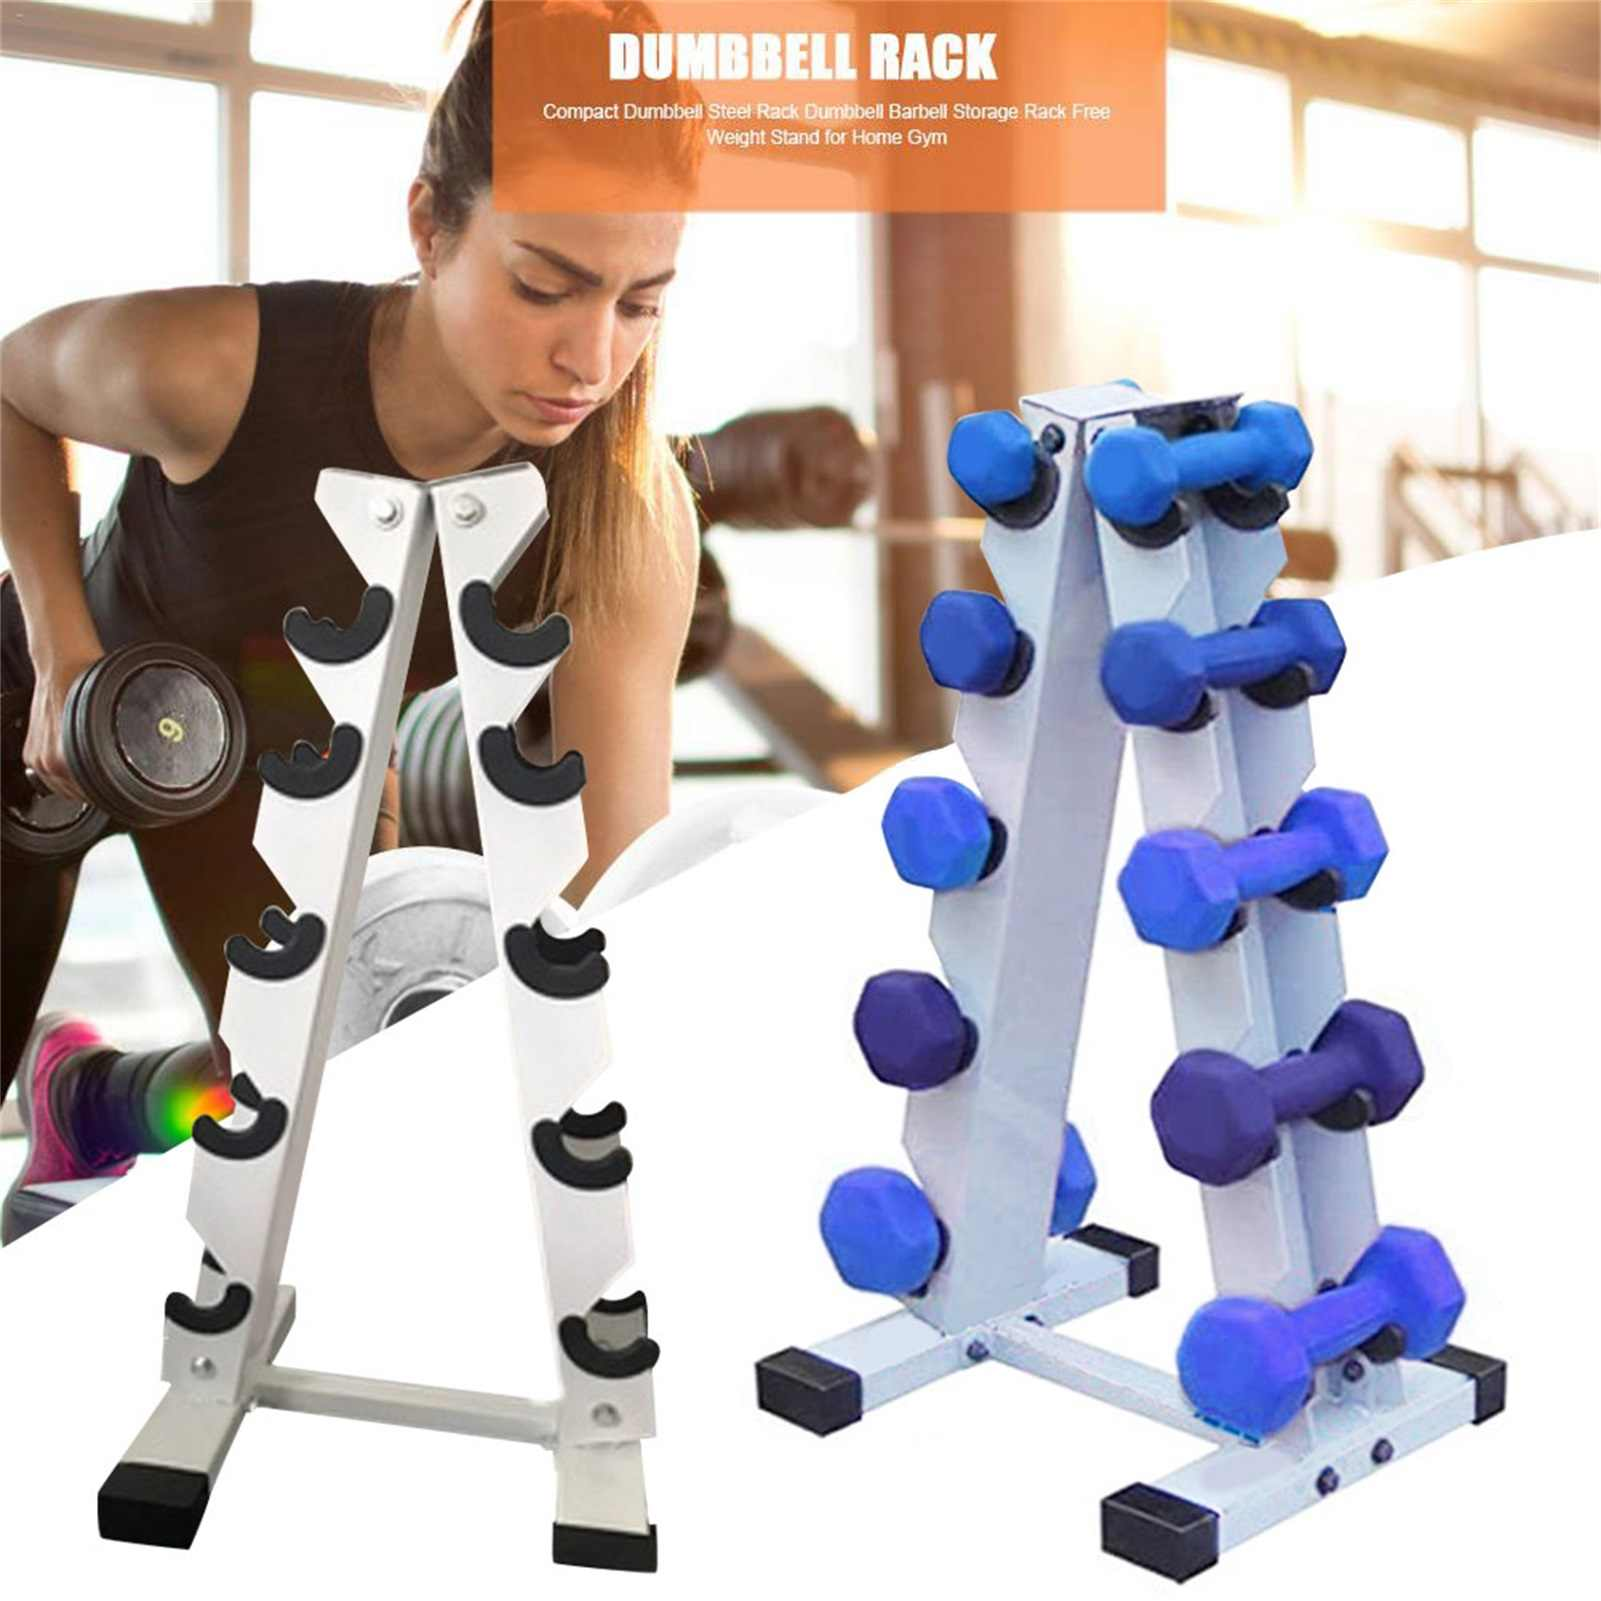 Compact Dumbbell Bracket Tree Dumbbell Holder for Home Gym Black ISENPENK Dumbbell Rack Free Weight Stand 3 Layer Exercise Weight Tower